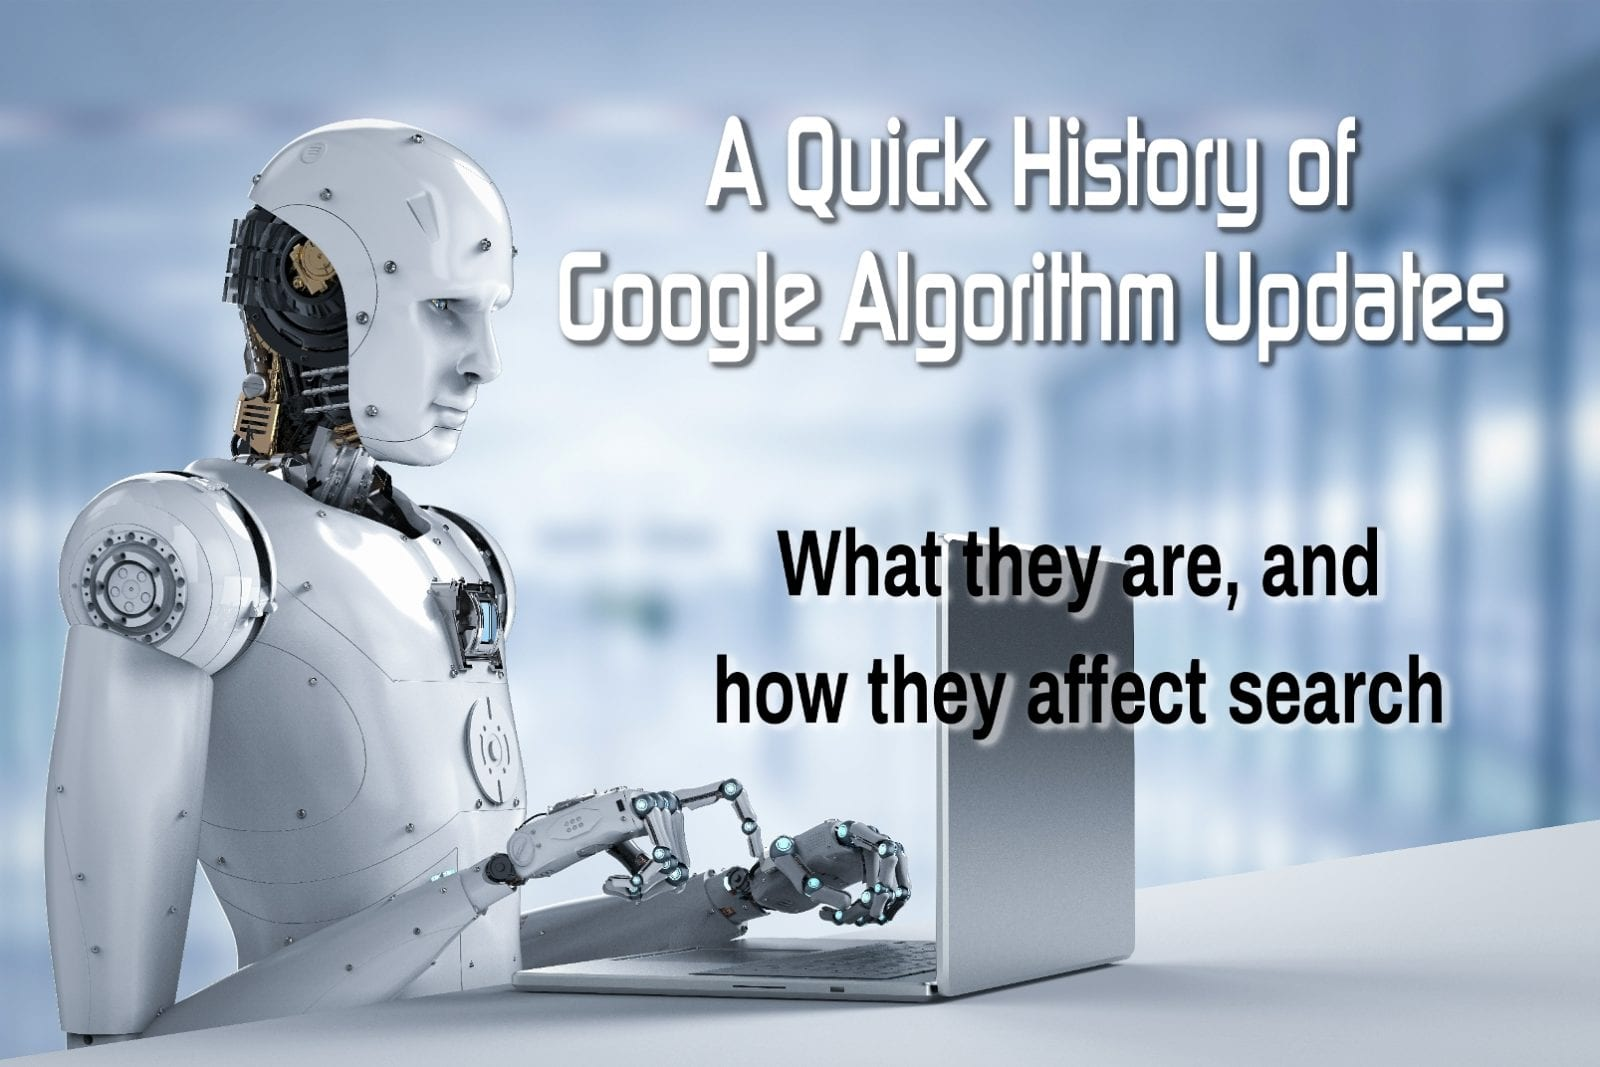 A quick history of google algorithm updates